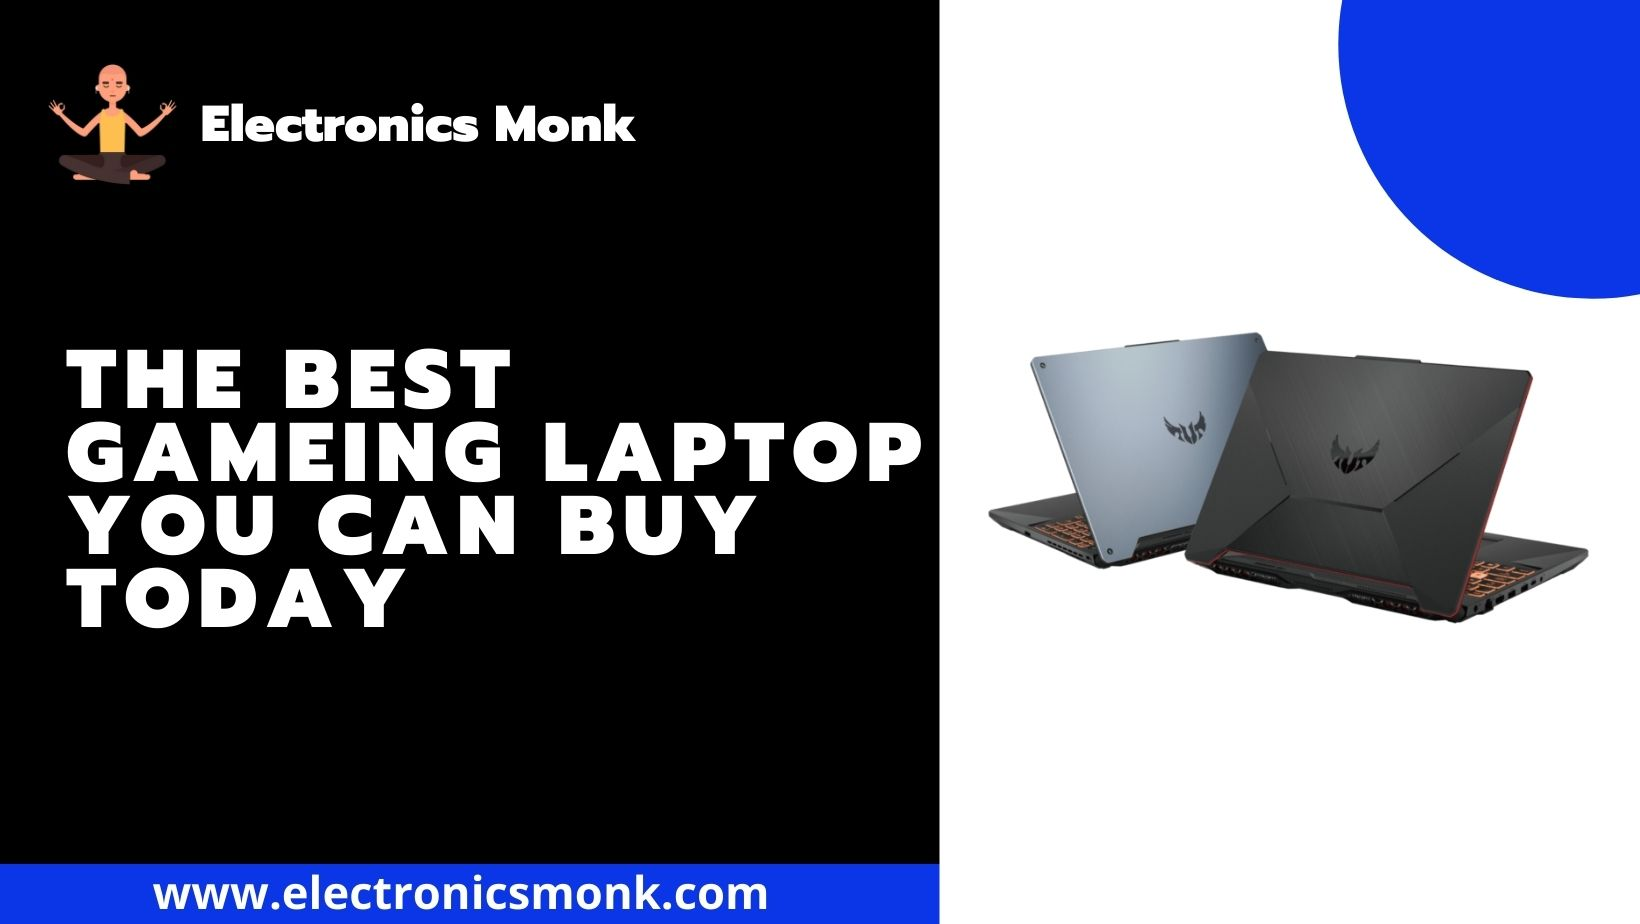 The best gaming laptop you can buy today